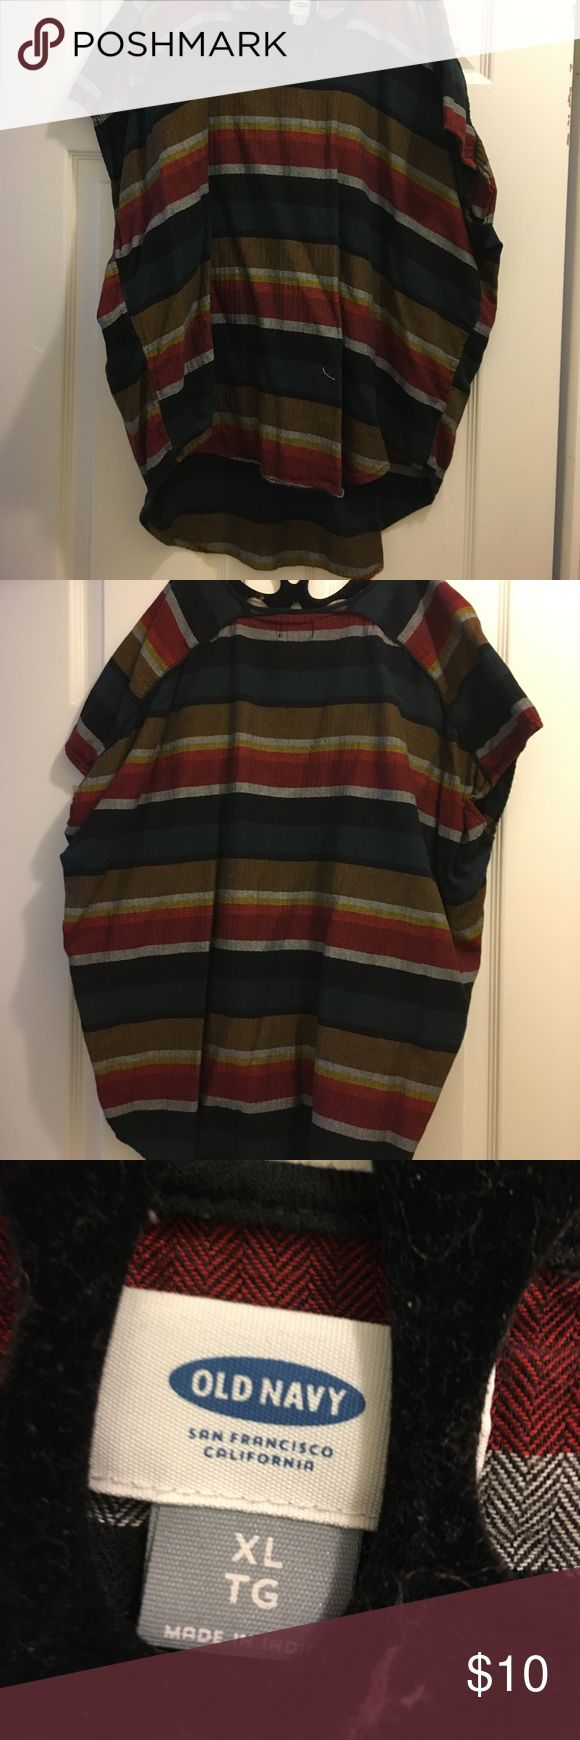 Old Navy Hi/Lo tunic shirt size XL Old Navy hi/Lo tunic shirt, runs large, size XL, very comfortable, kind of Jamaican color scheme, whenever I wore this it got A LOT of compliments Old Navy Tops Blouses